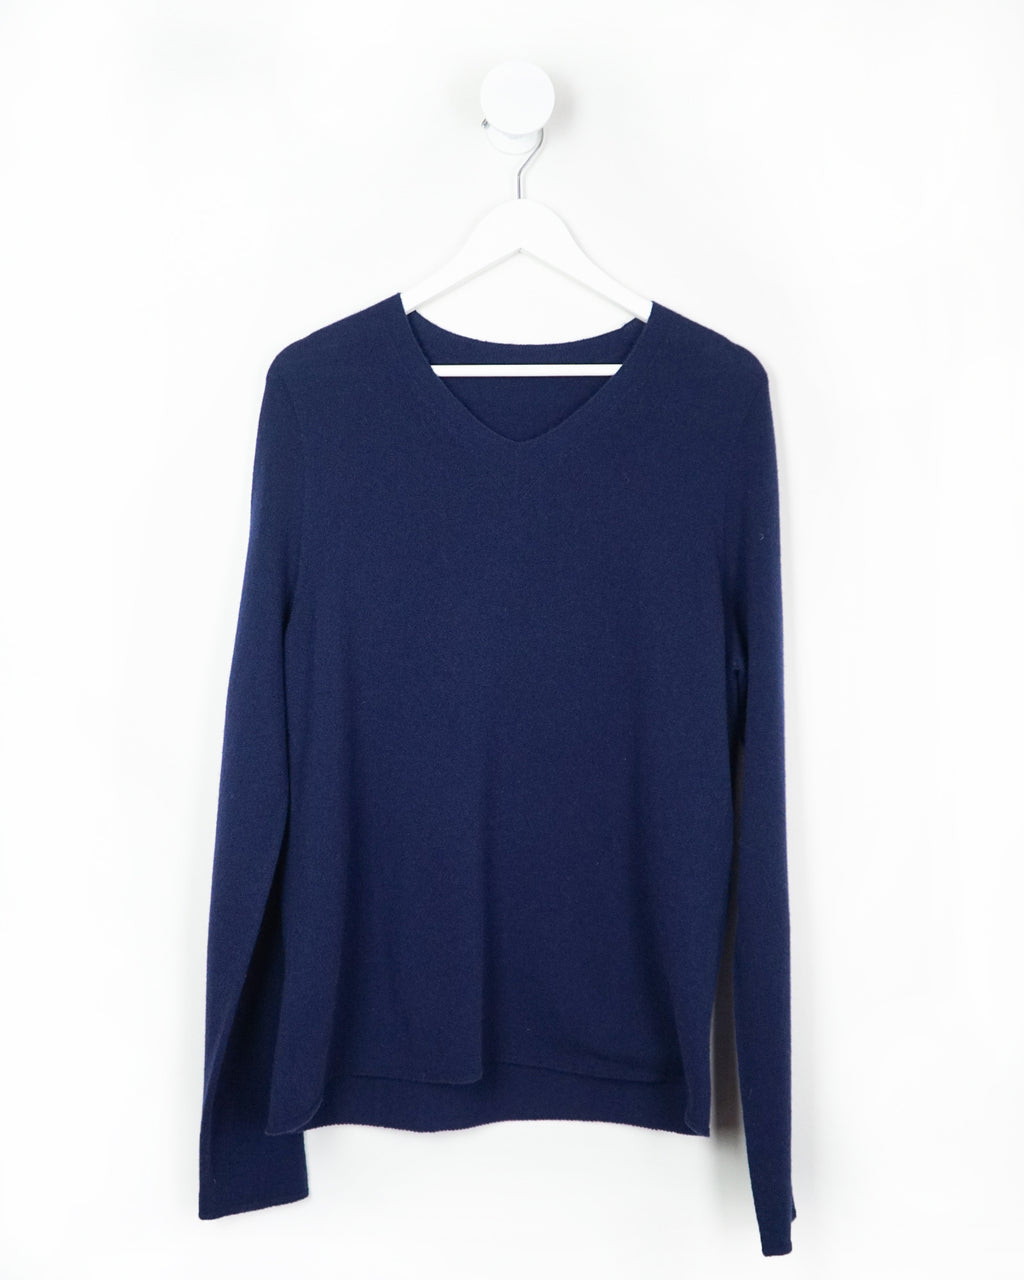 Knit To Order All-Gender Evan Vee Neck Cashmere Sweater